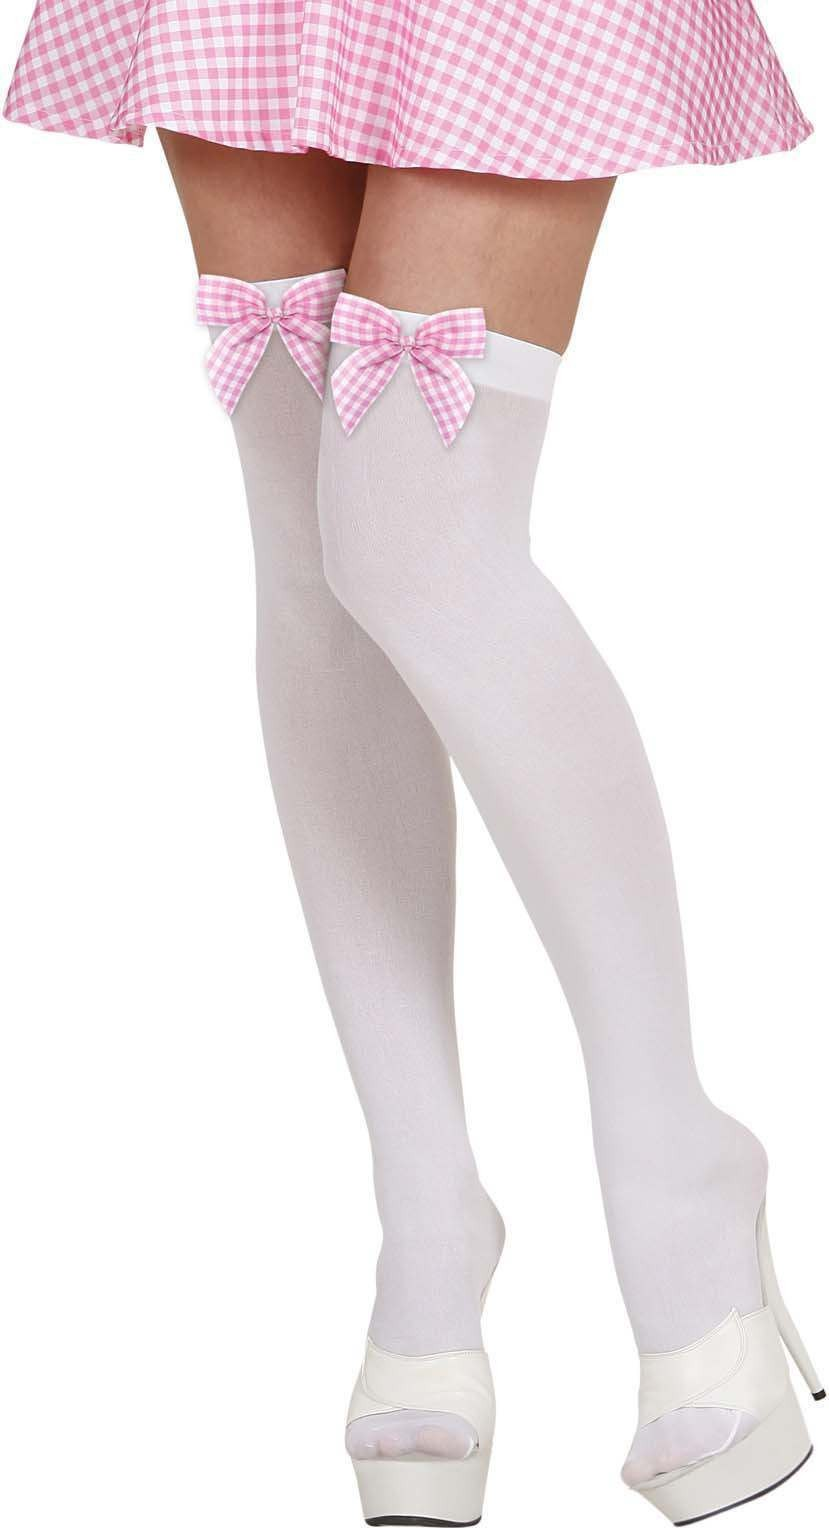 Ladies White Thigh Highs W/Pink Checked Bows Tights - (White)